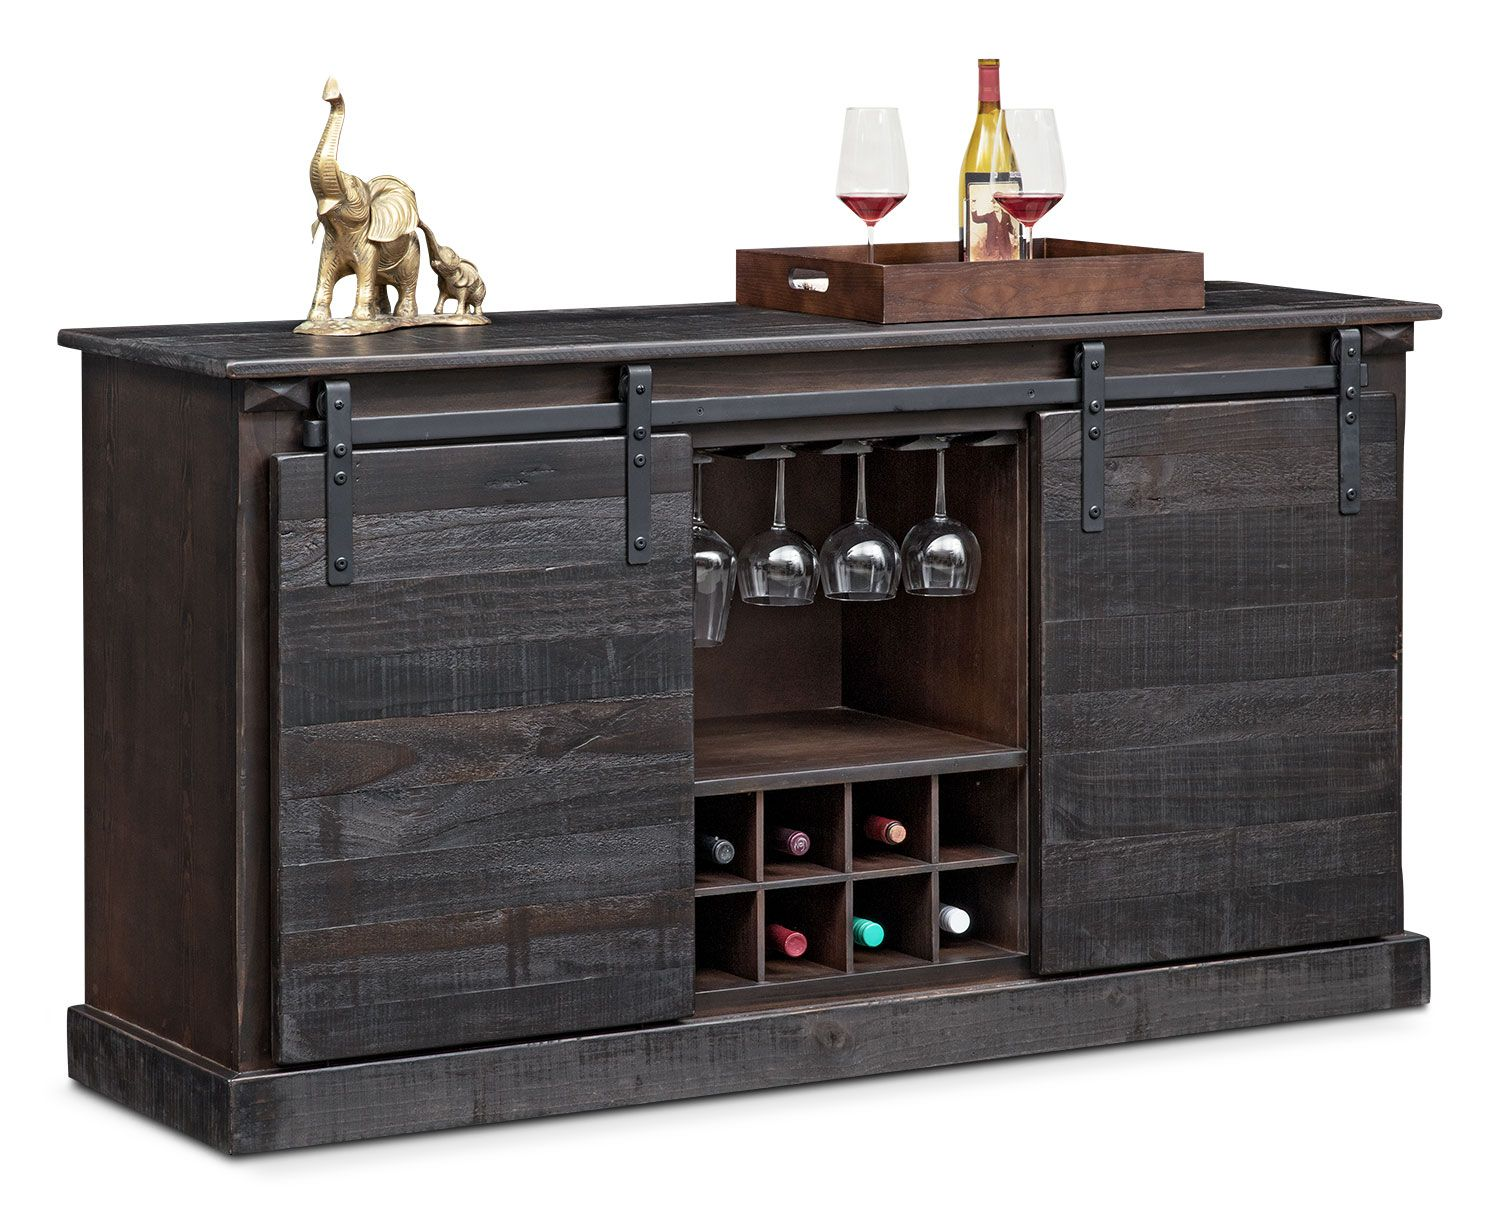 Uncork And Unwind Display Your Wine In Style With The